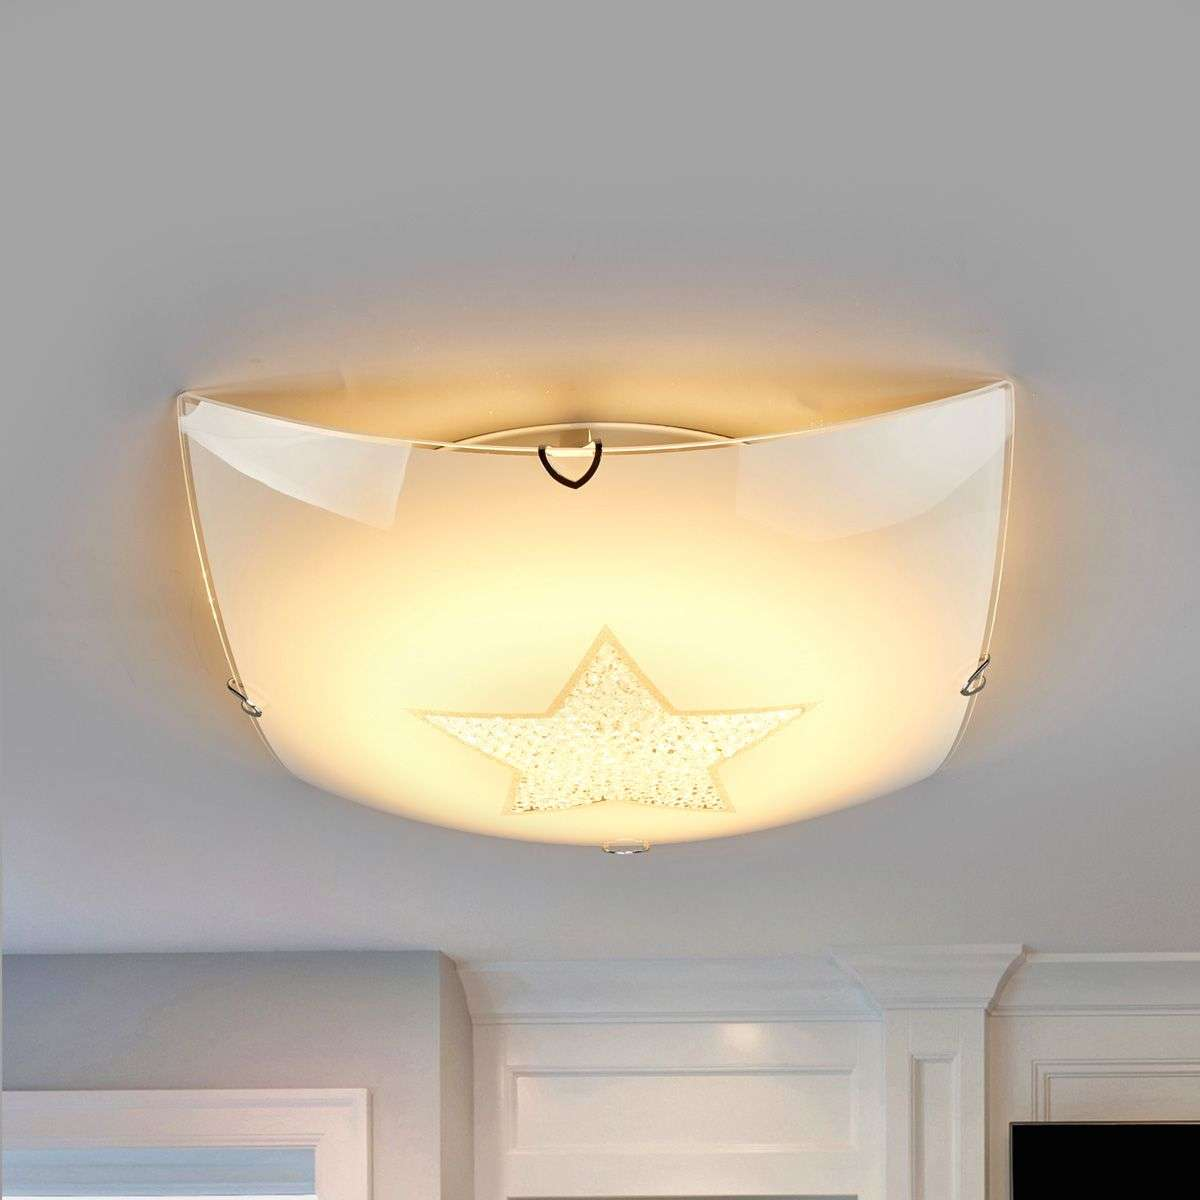 Sparkling led ceiling light star with crystals lights sparkling led ceiling light star with crystals 4581145 31 aloadofball Images